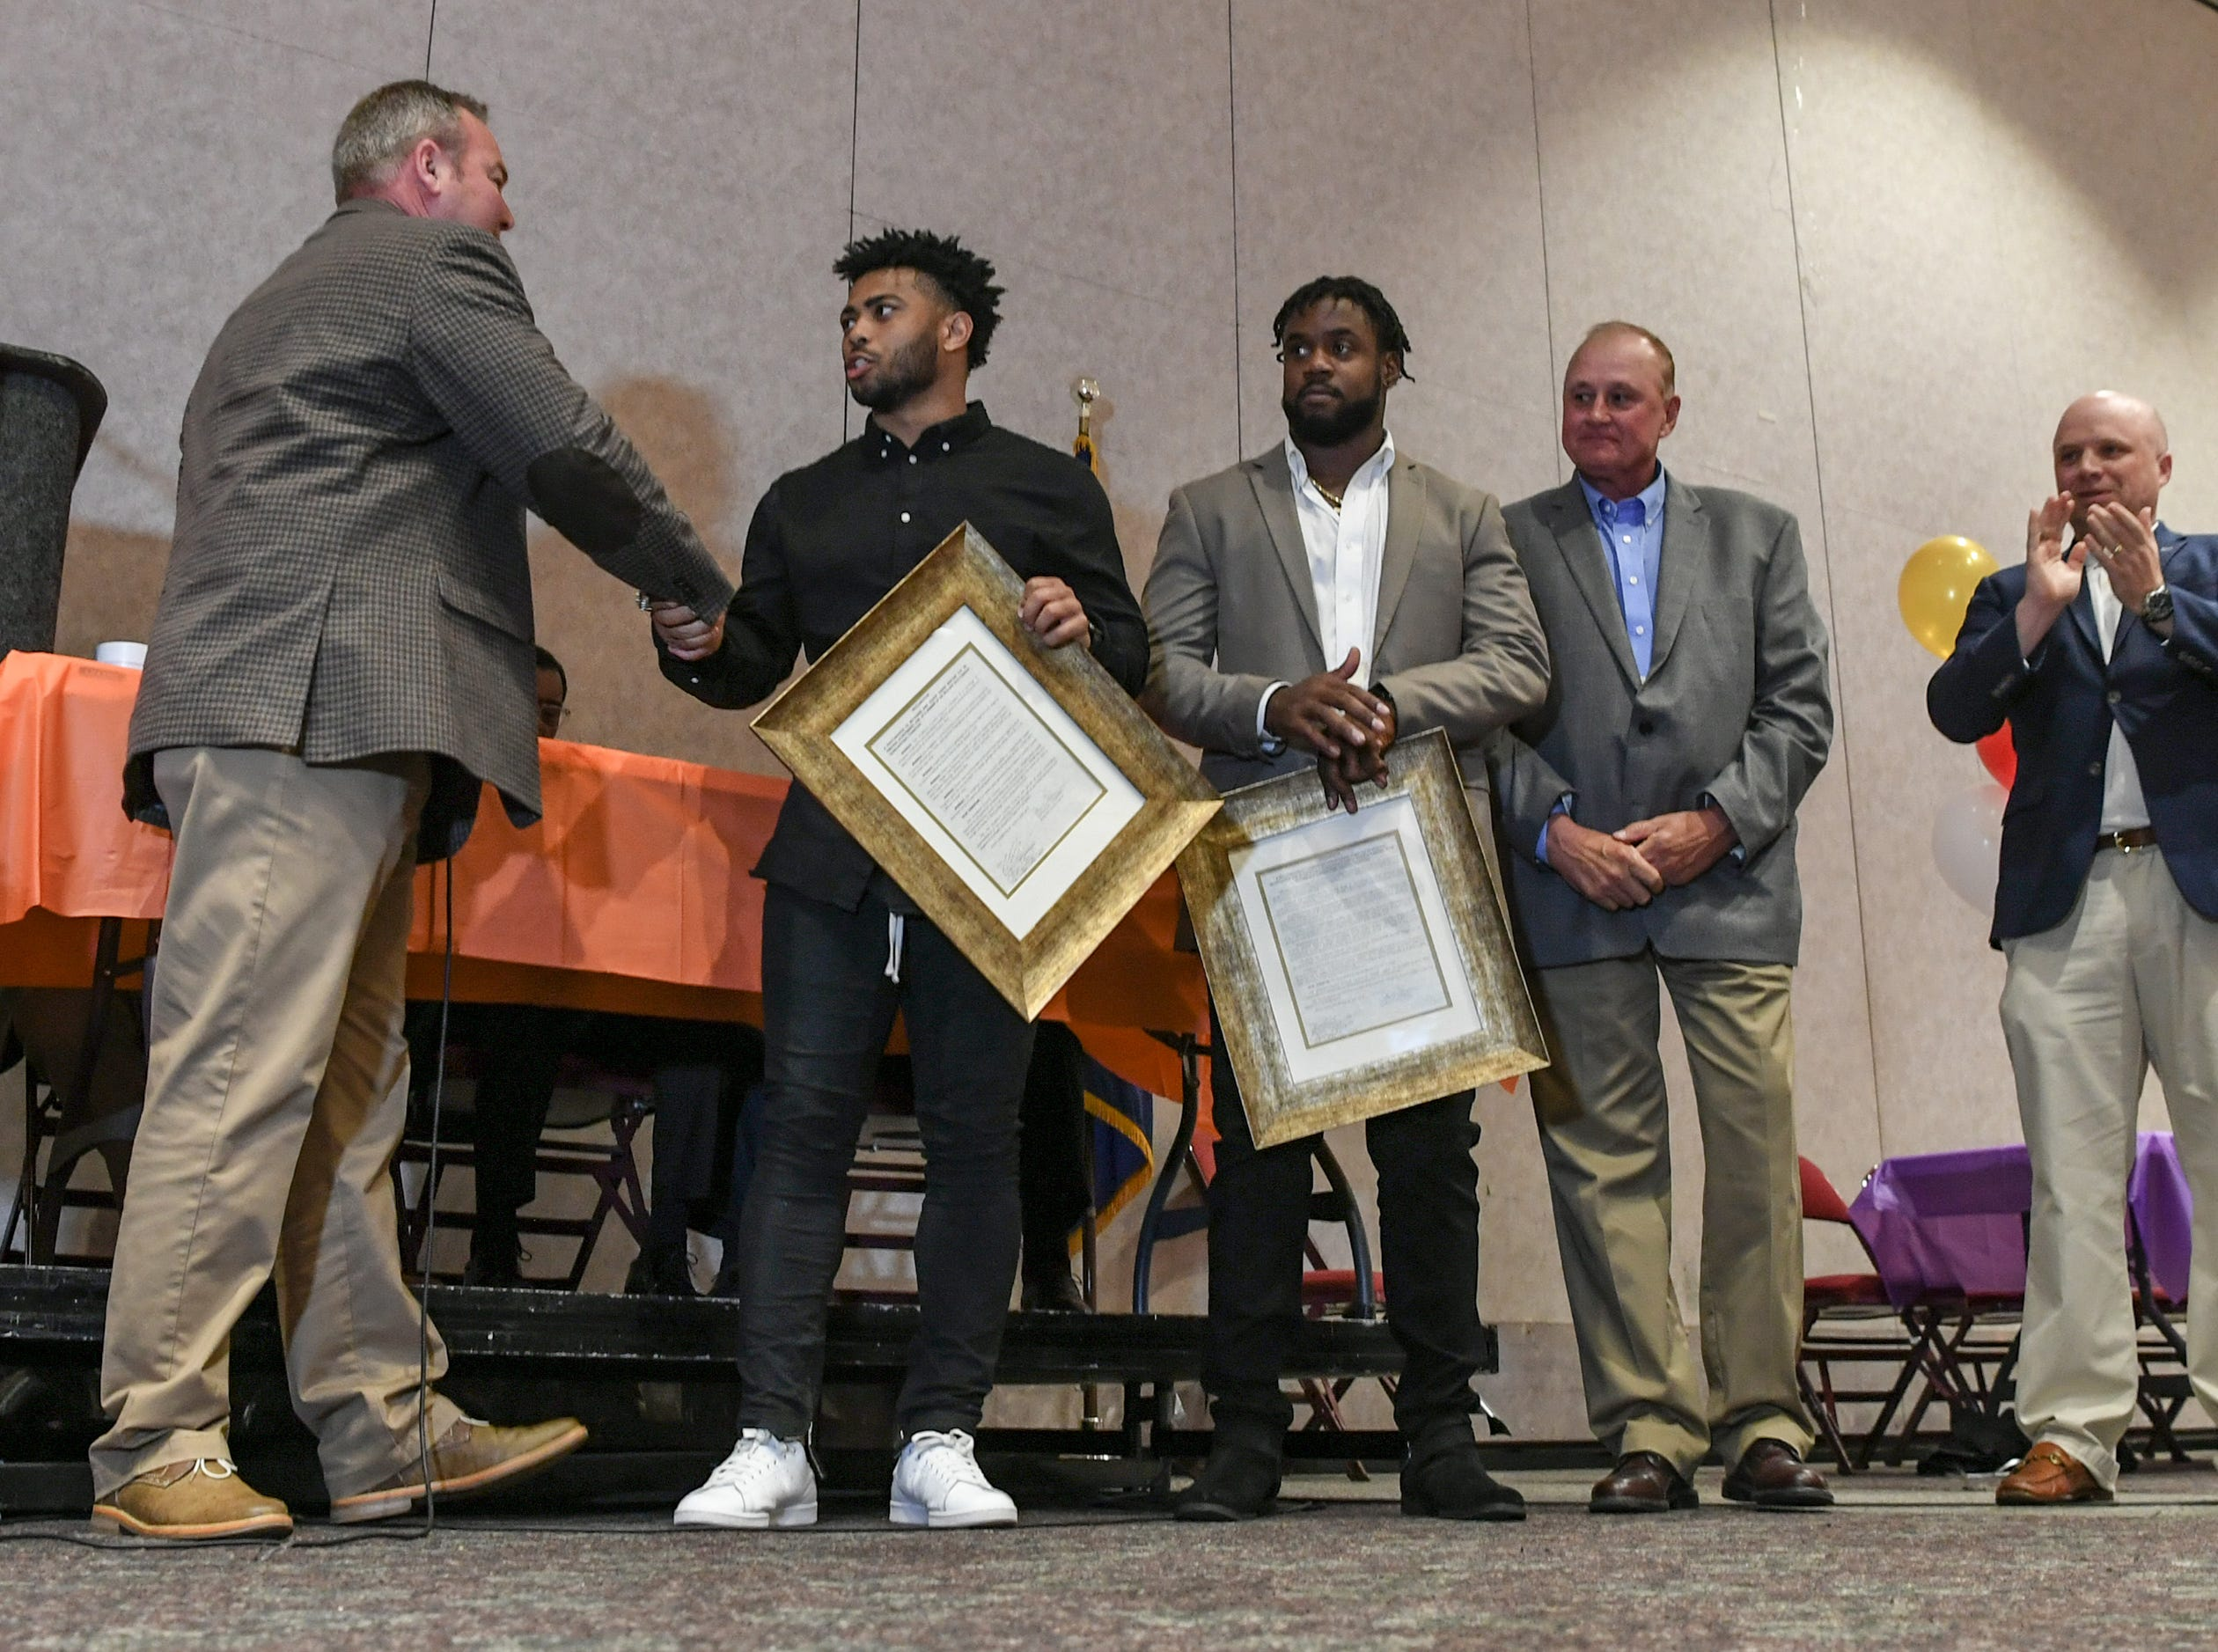 Brett Sanders, left, Anderson County Councilman makes a proclamation honoring Darien Rencher, middle, a former T.L. Hanna High football player from Anderson County, and two-time college football national champion during the Anderson Area Touchdown Club Annual Awards Banquet at the Anderson County Civic Center Monday, April 8th, 2019. Craig Wooten honored Kendall Joseph, right, a former Belton-Honea Path High School player earlier.